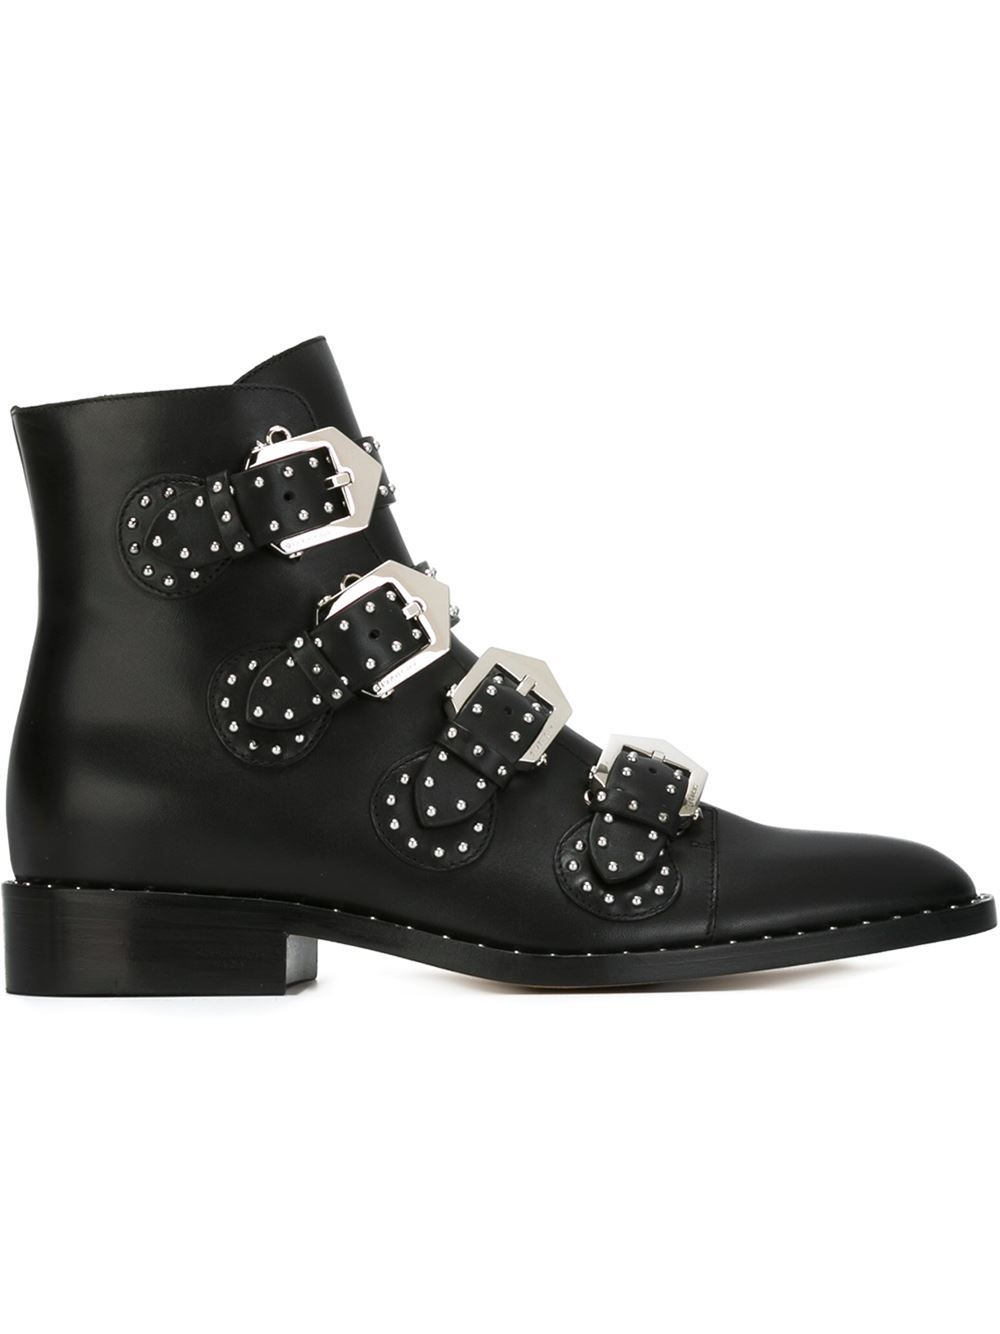 Women - Givenchy Buckled Ankle Boots - Tessabit.com – Luxury Fashion For  Men and Women  Shipping Worldwide dddcf30074